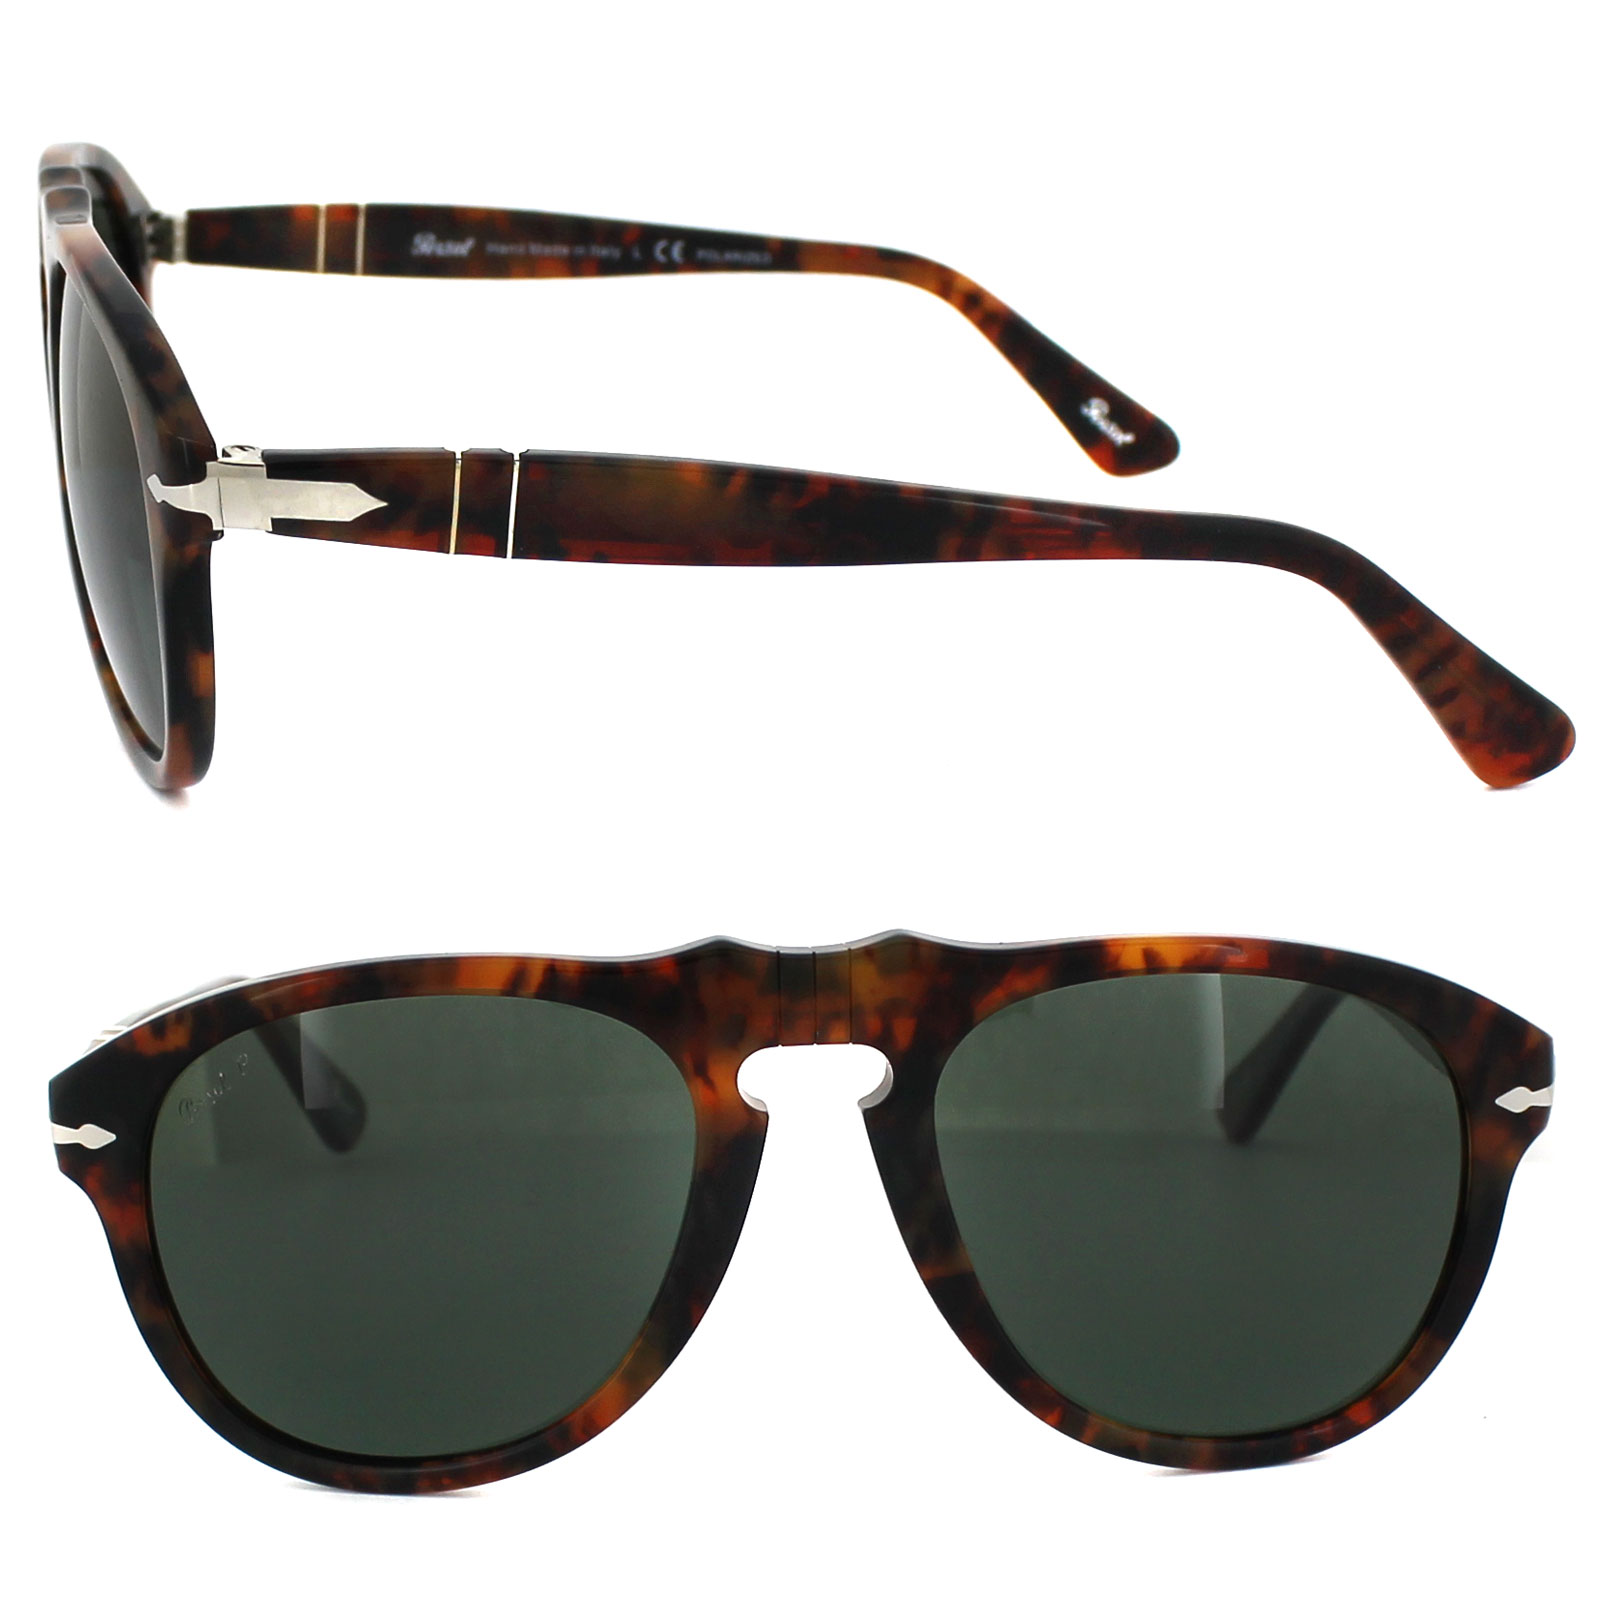 412dd47c48c Sentinel Persol Sunglasses 0649 108 58 Spotted Brown Caffe Green Polarized  52mm